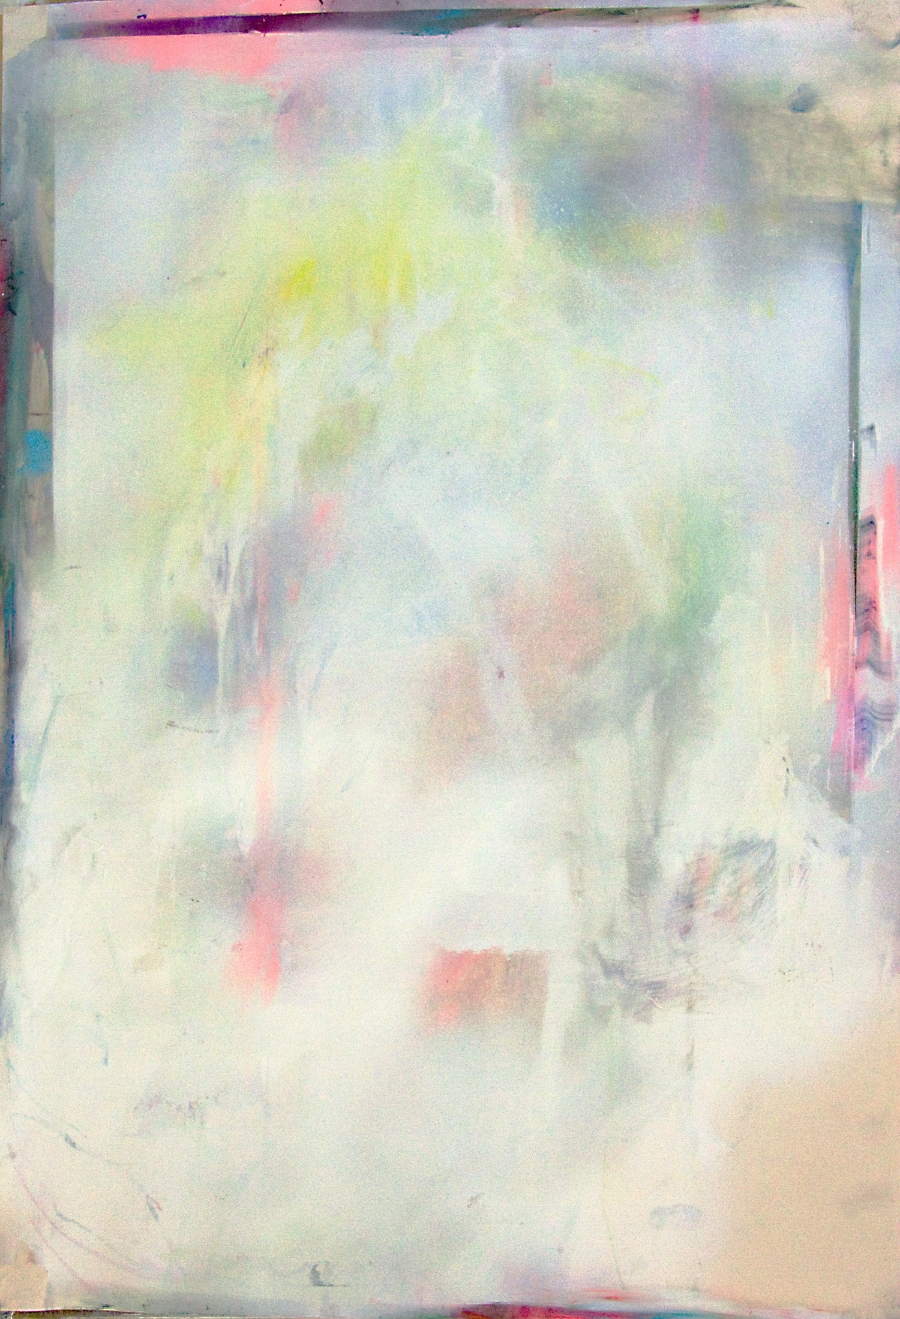 Bruno Albizzati Untitled ( combustible ), 2013 Pastels and acrylic on paper 94 x 64 cm